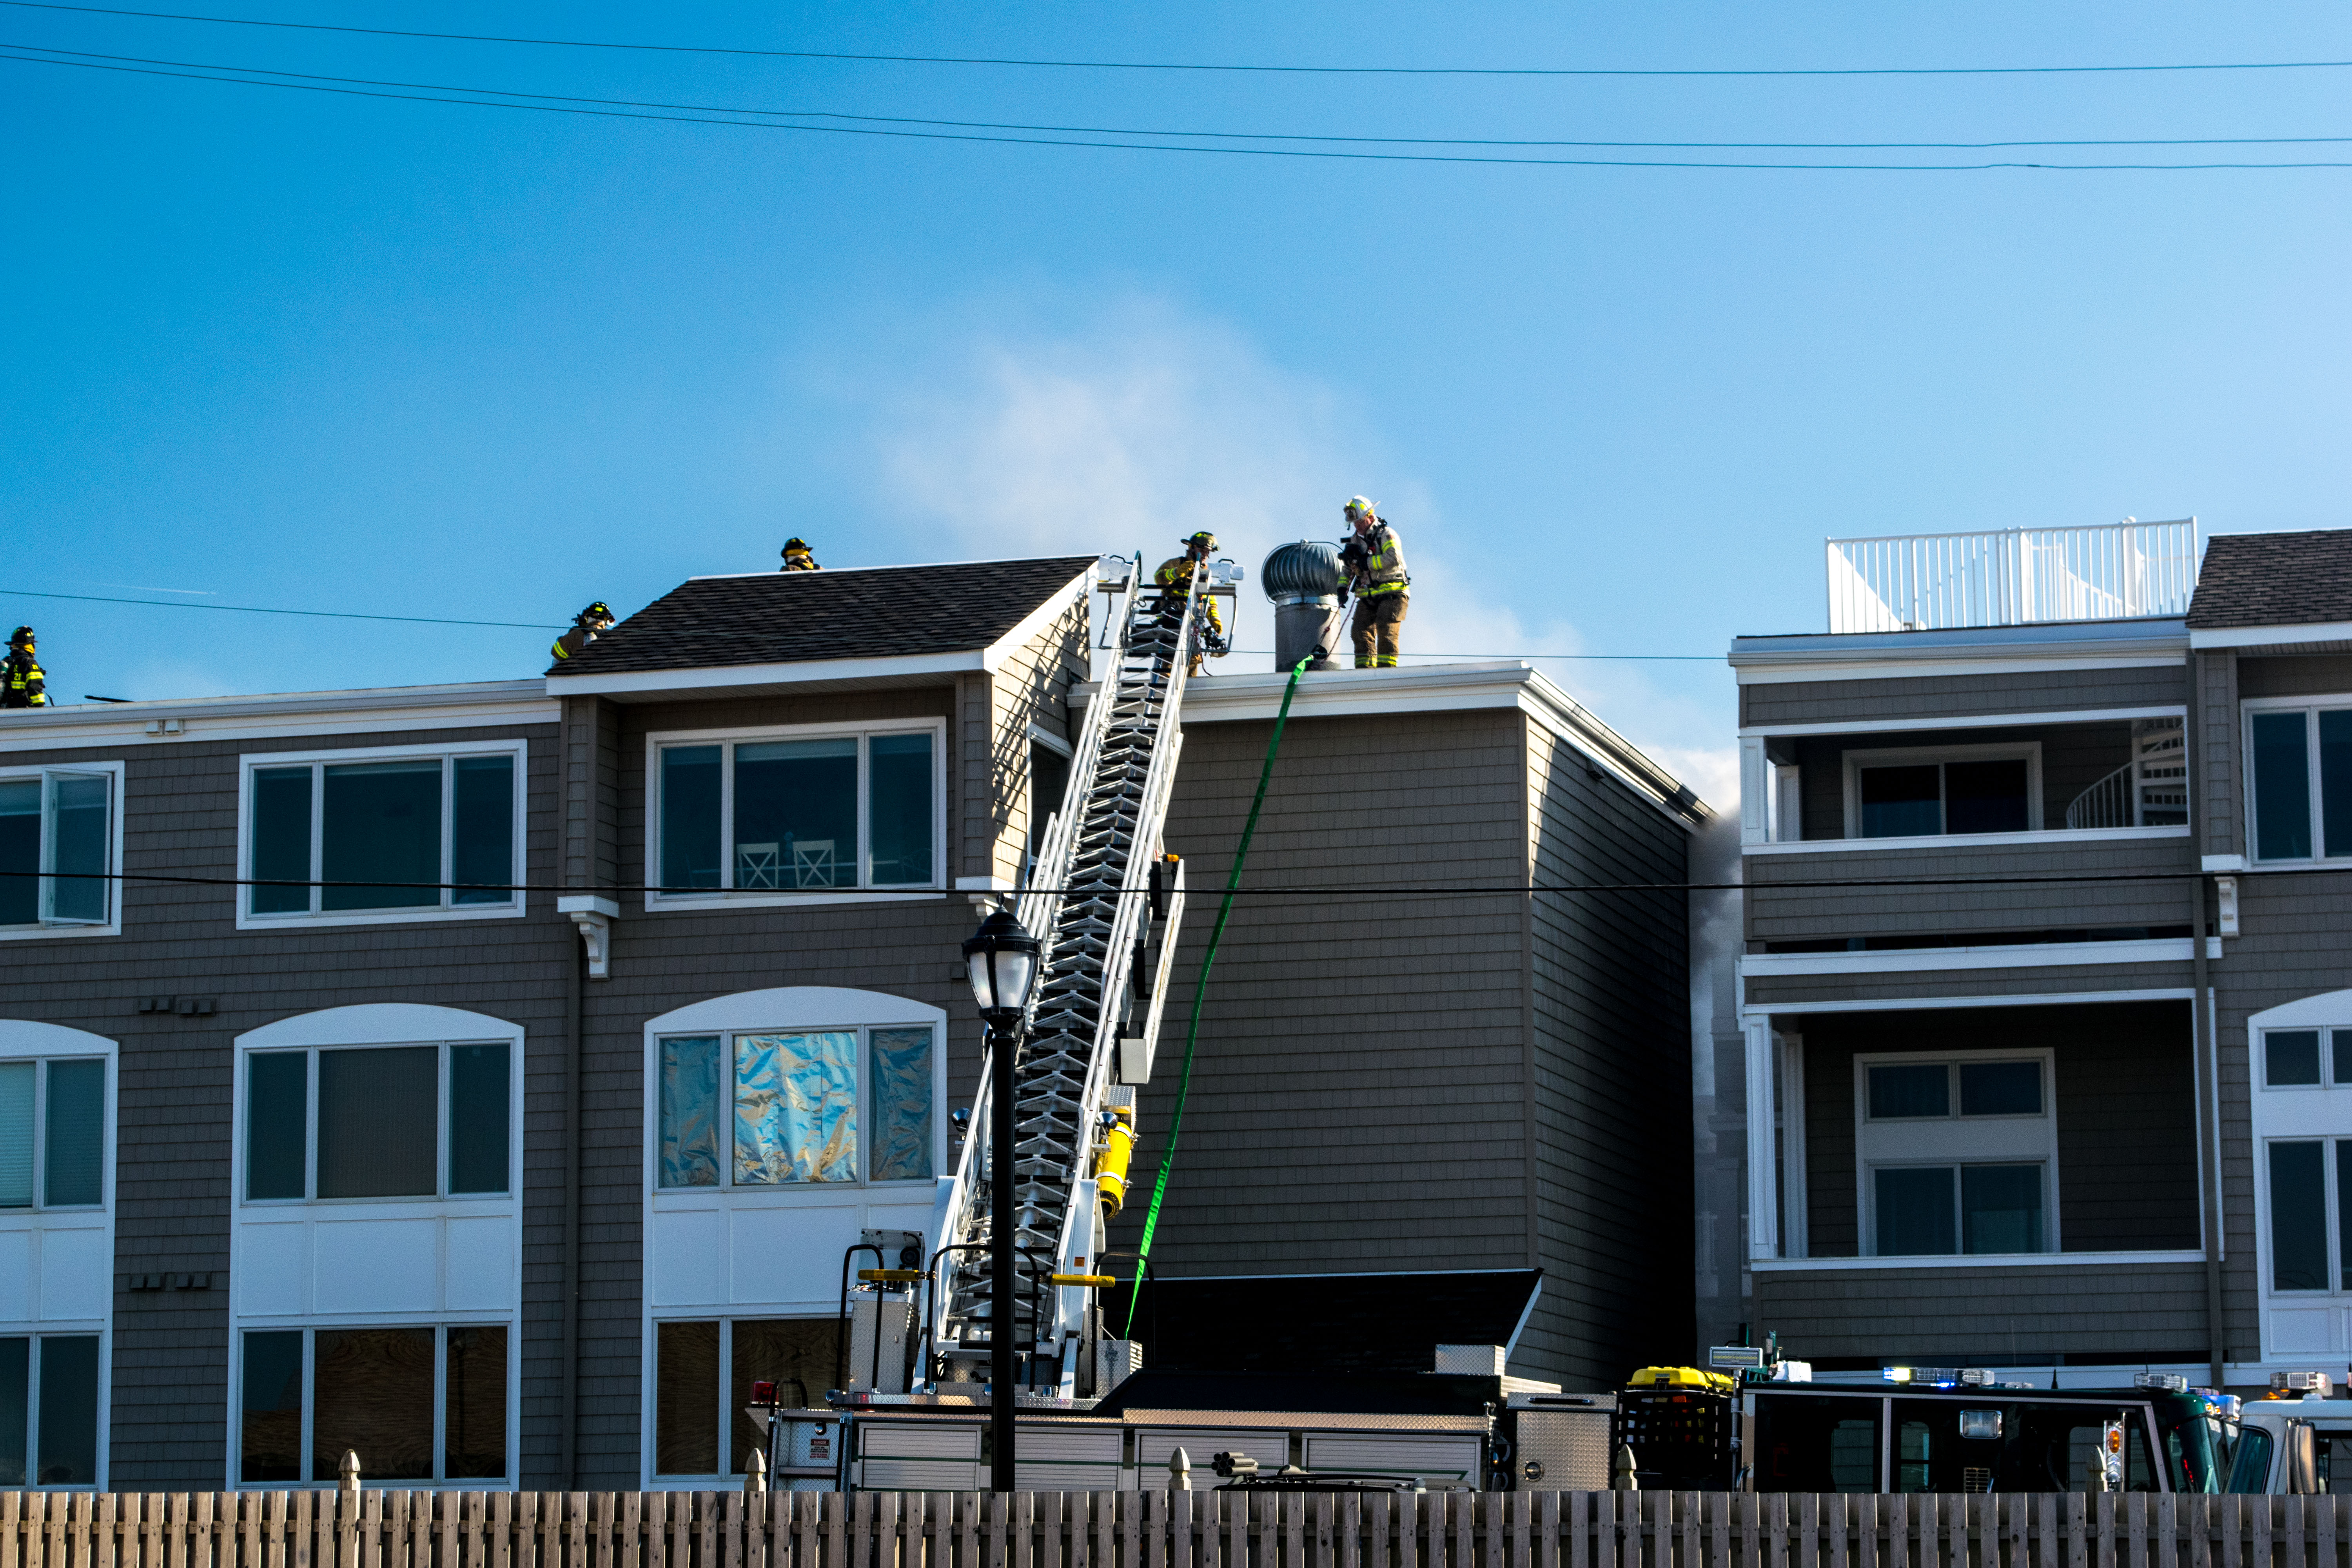 Firefighters respond to a four-alarm blaze at the Ocean Club condominium on Route 35 in Brick. (Photo: Daniel Nee)